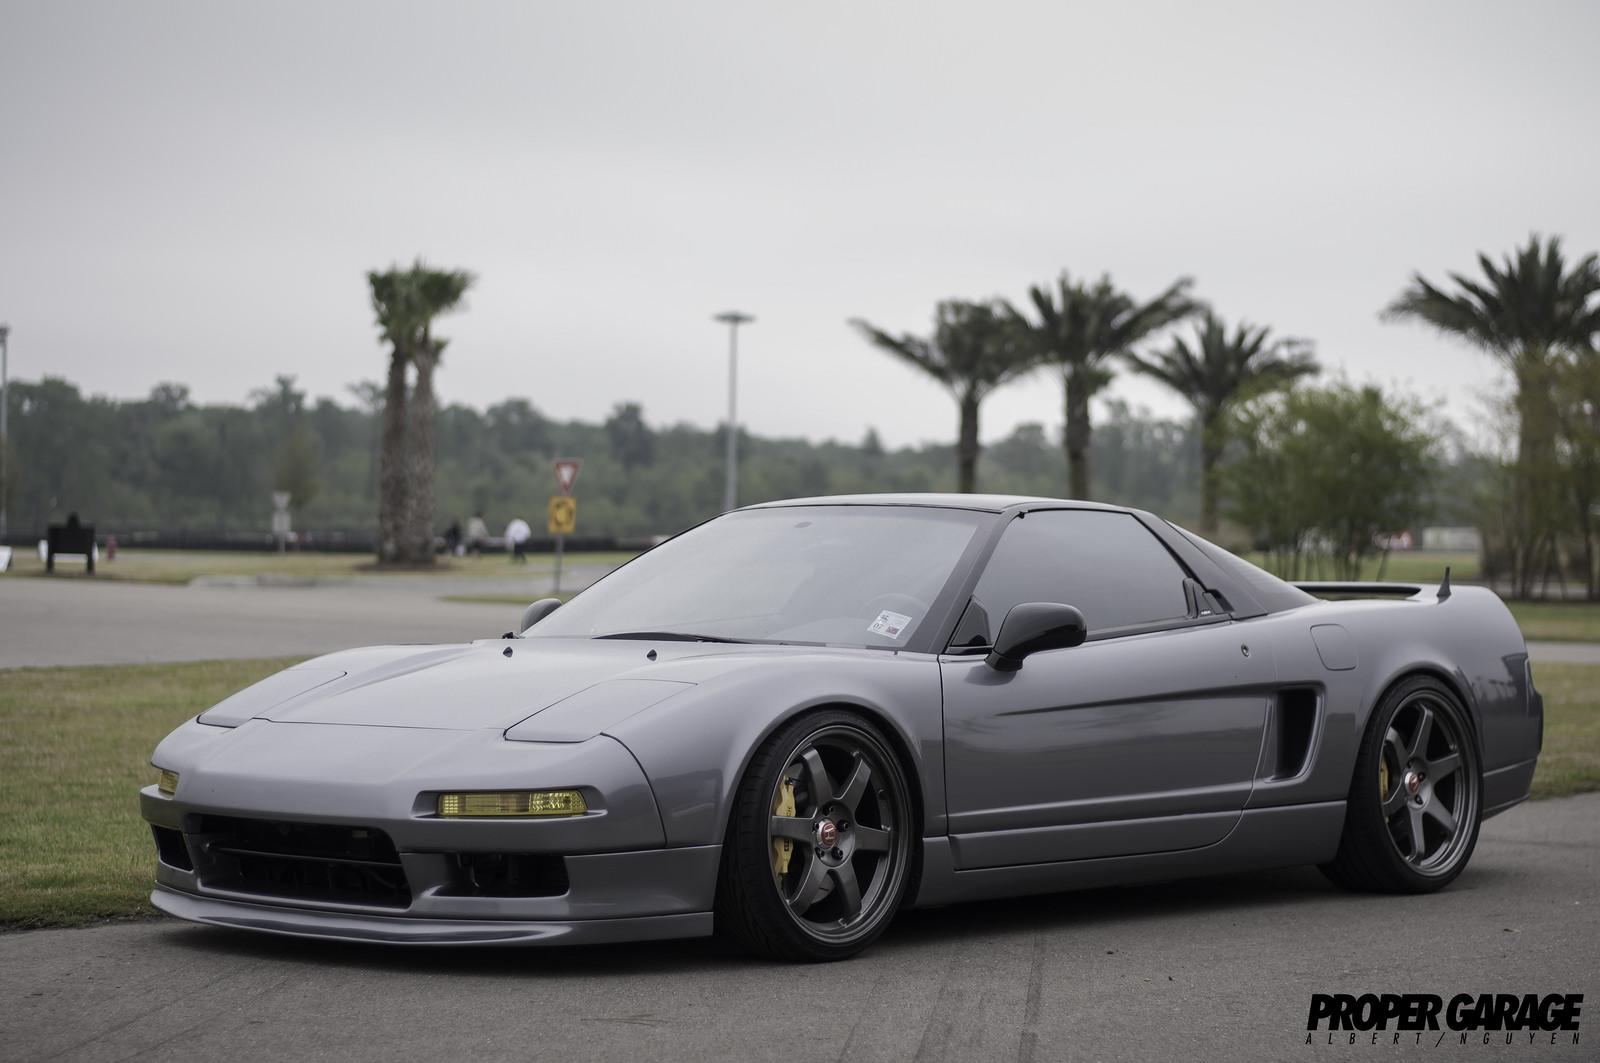 Incredibly Clean Acura Nsx Stancenation Form Gt Function